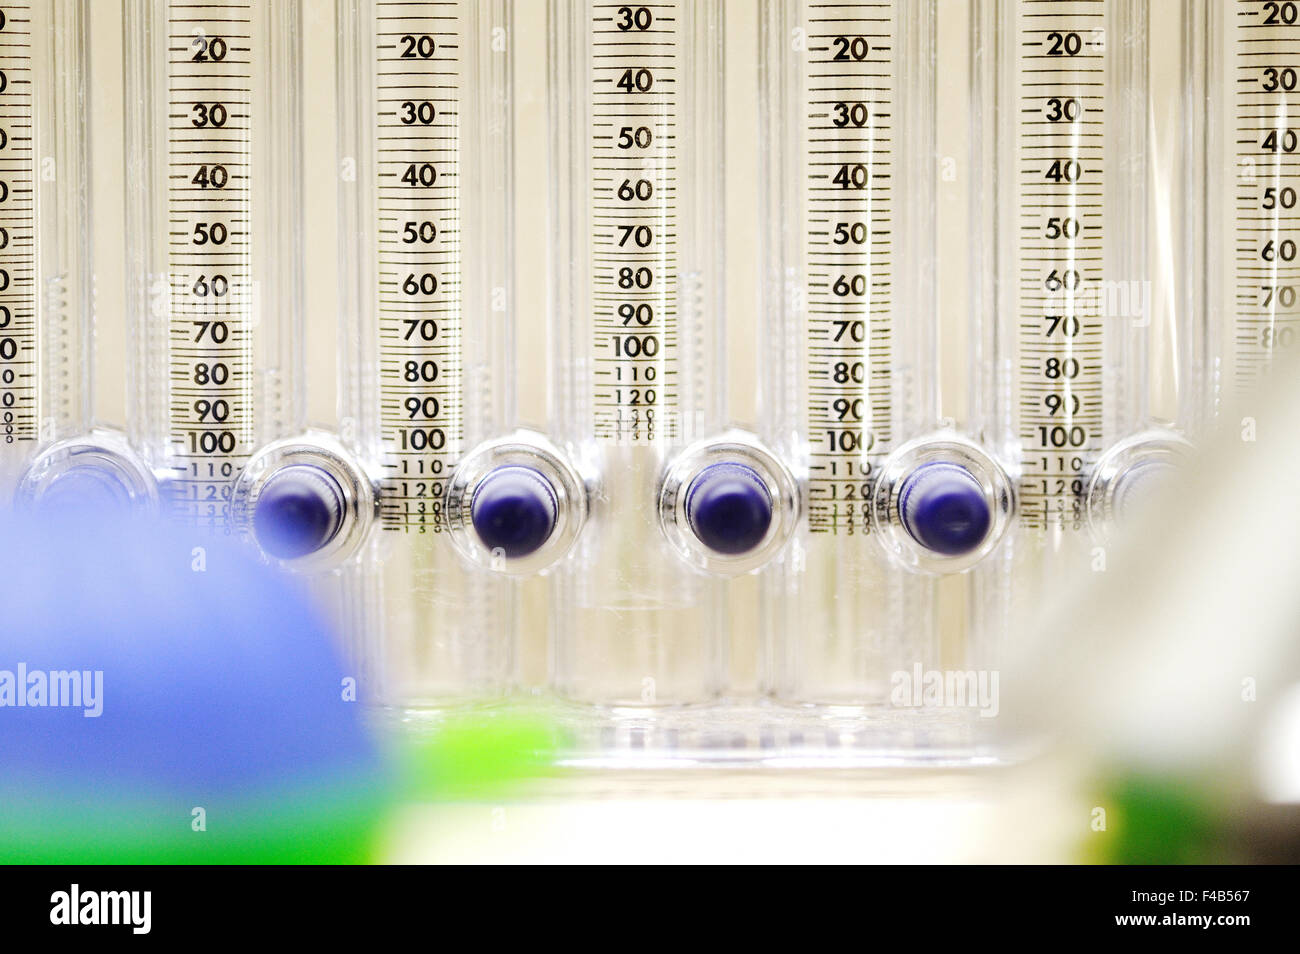 Tool for measuring the blood descent - Stock Image